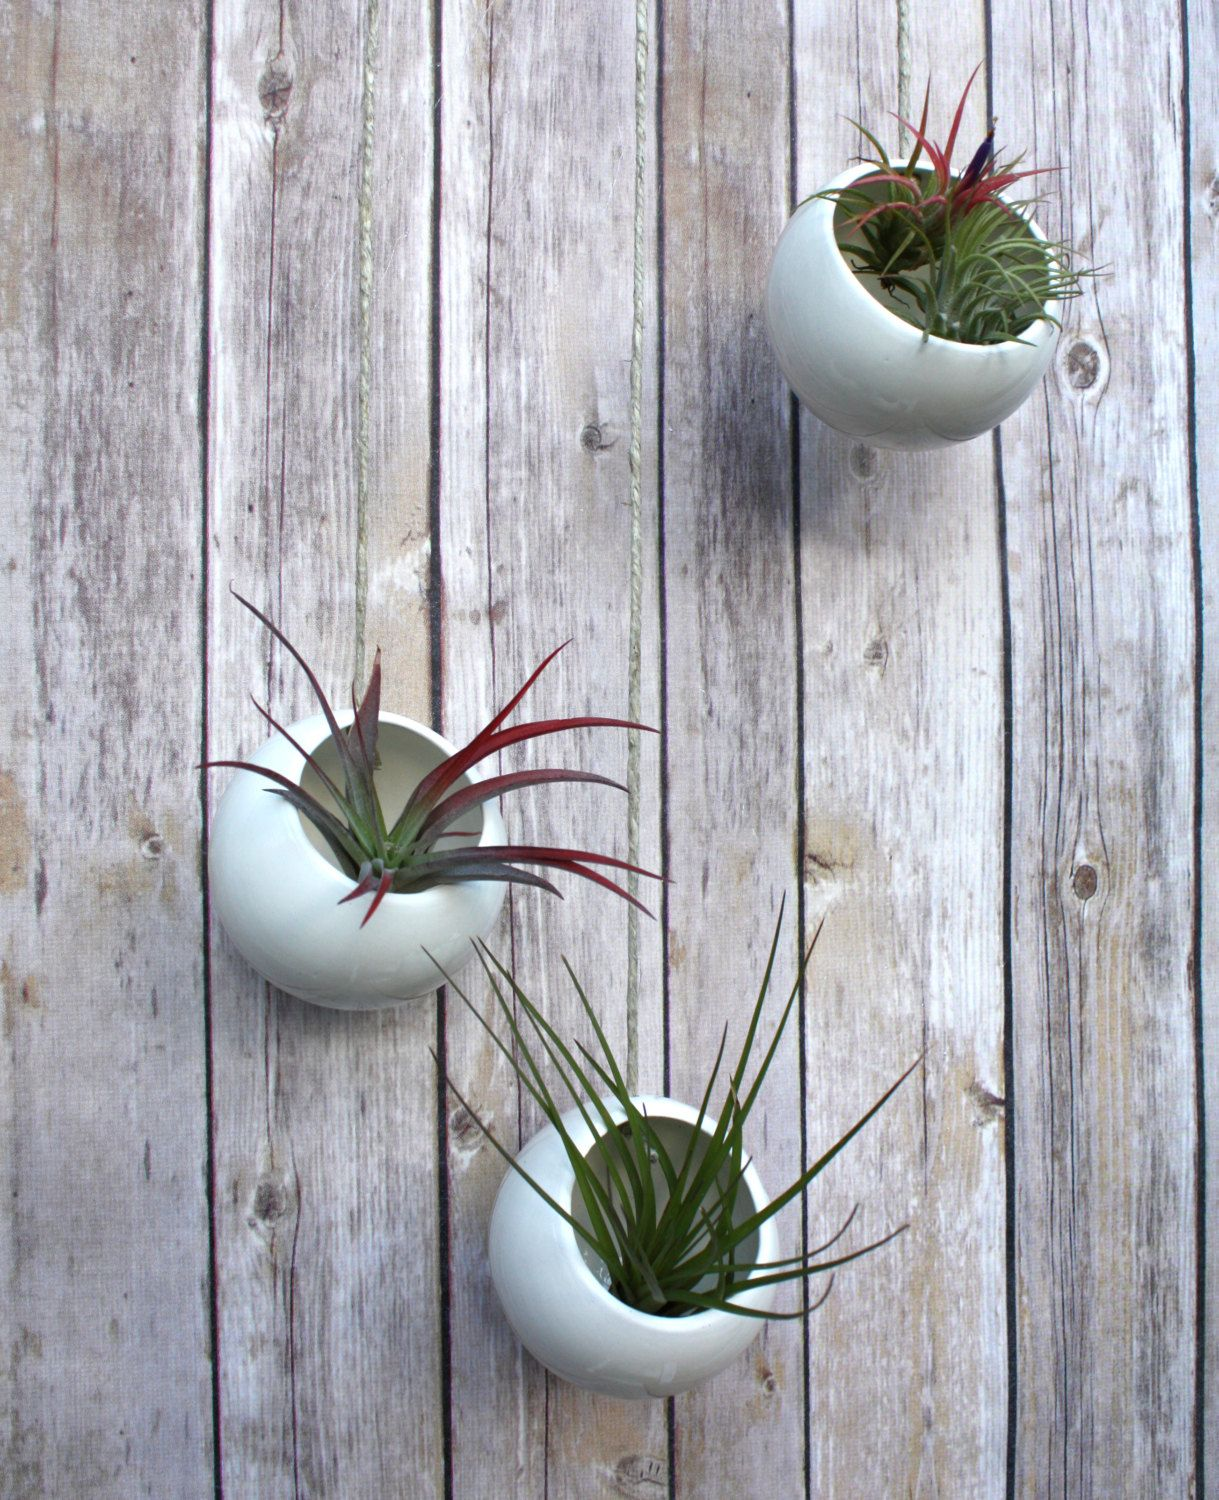 Large Wall Mounted Planters How To Care For The Lovely Air Plants That Adorn Your Home